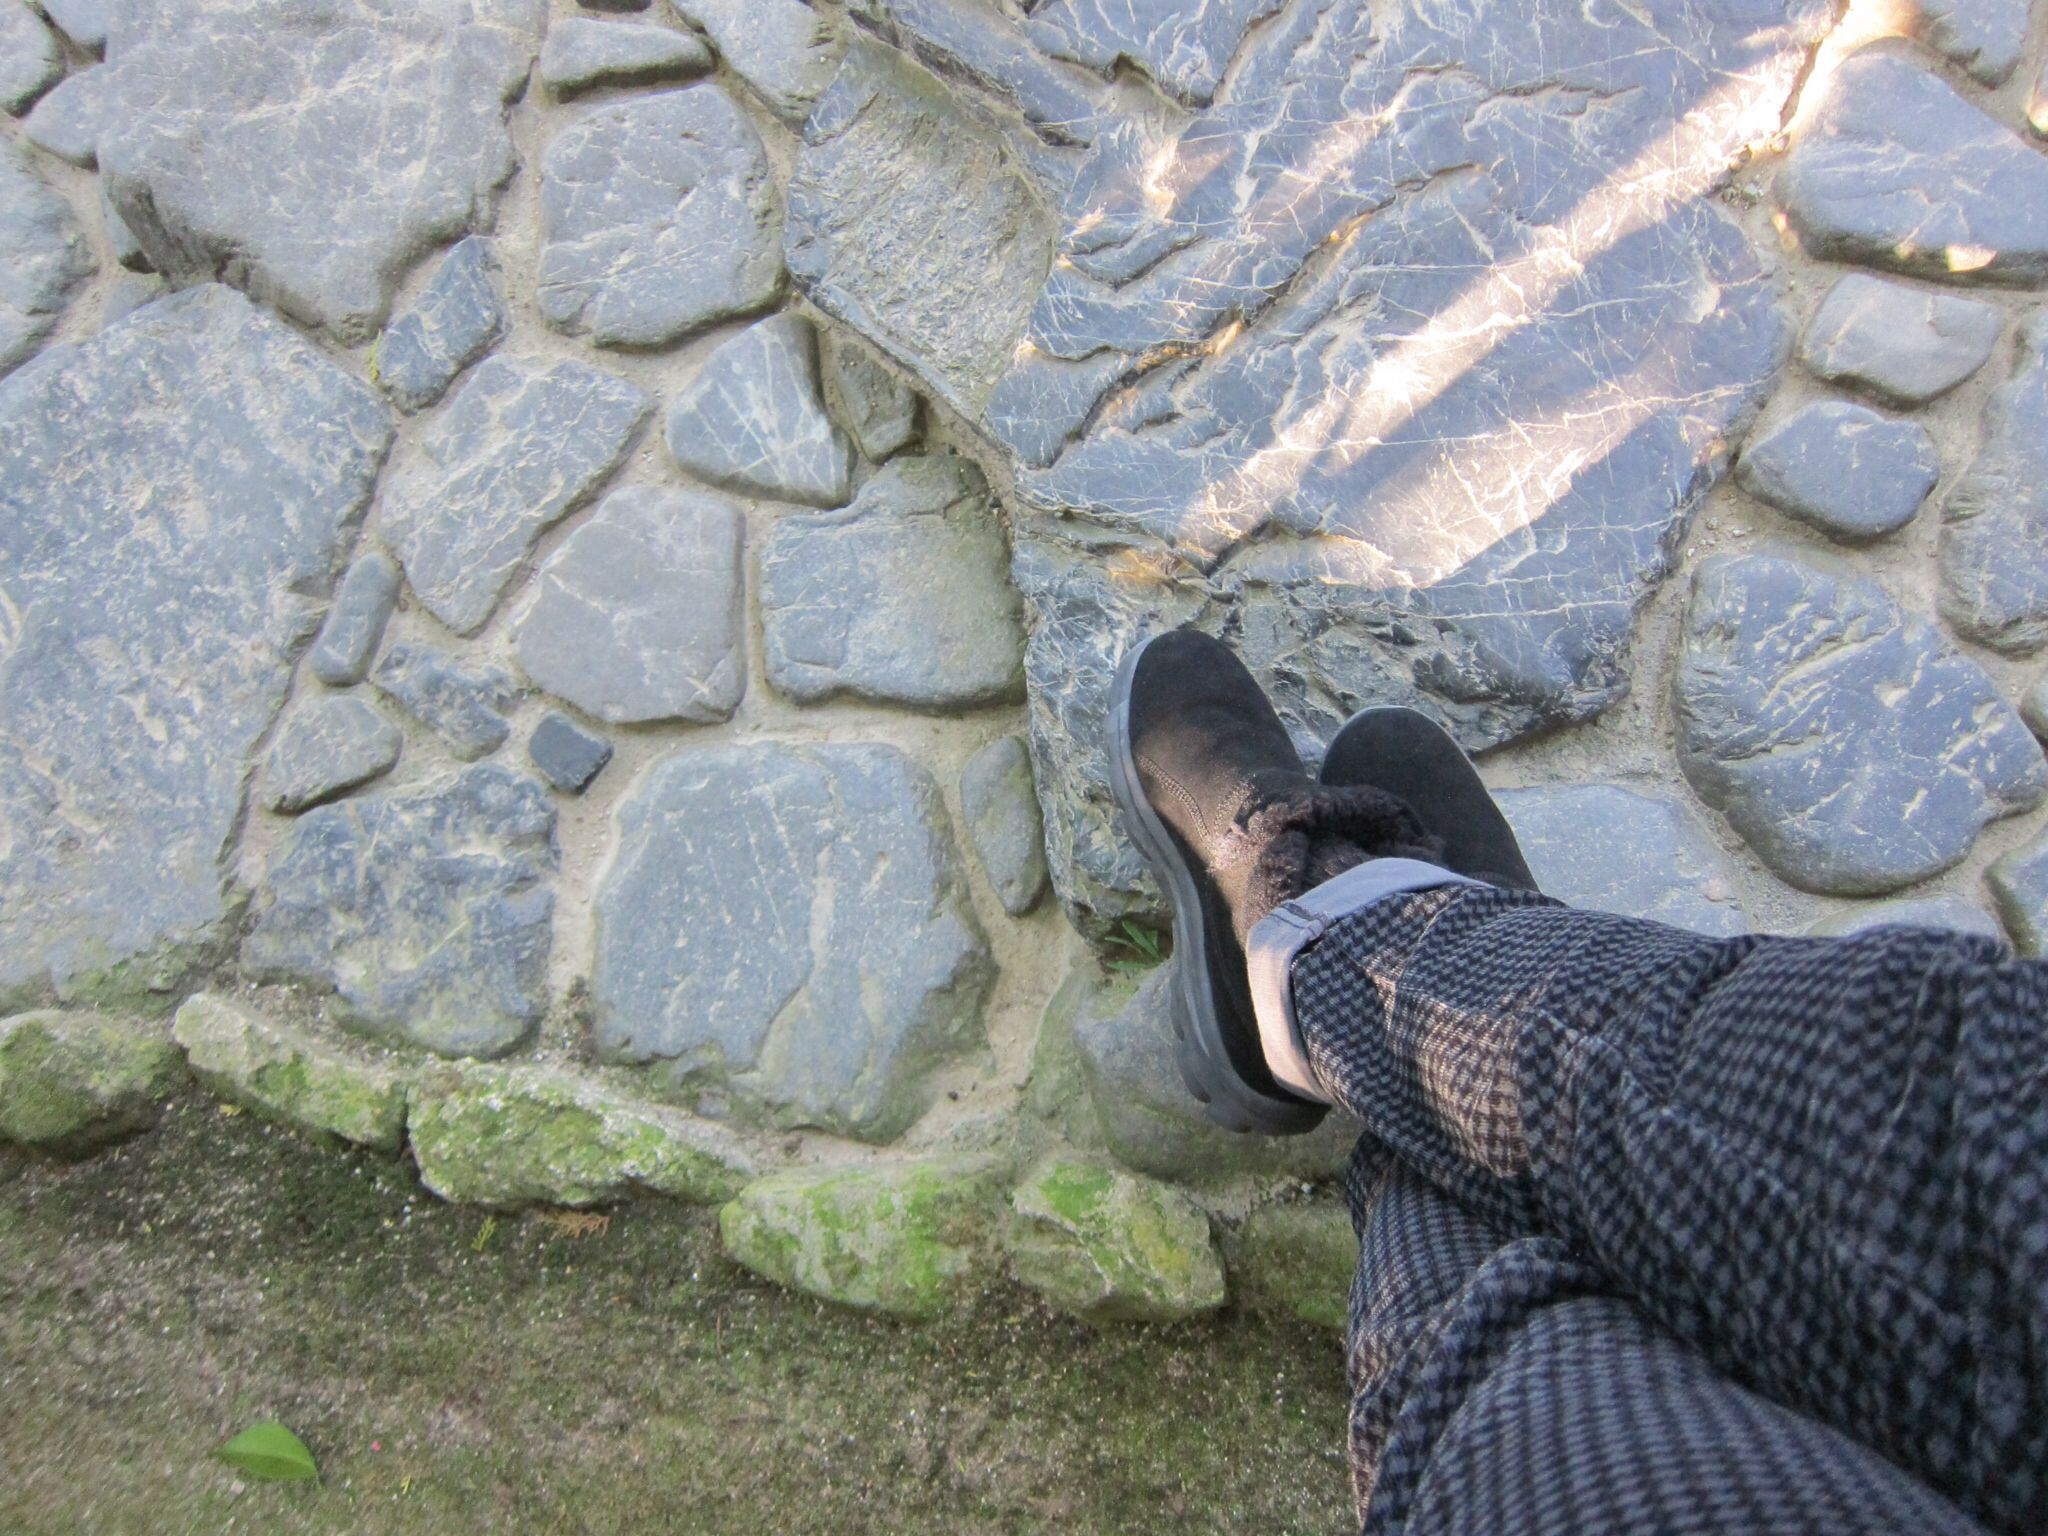 Own your step ... :)